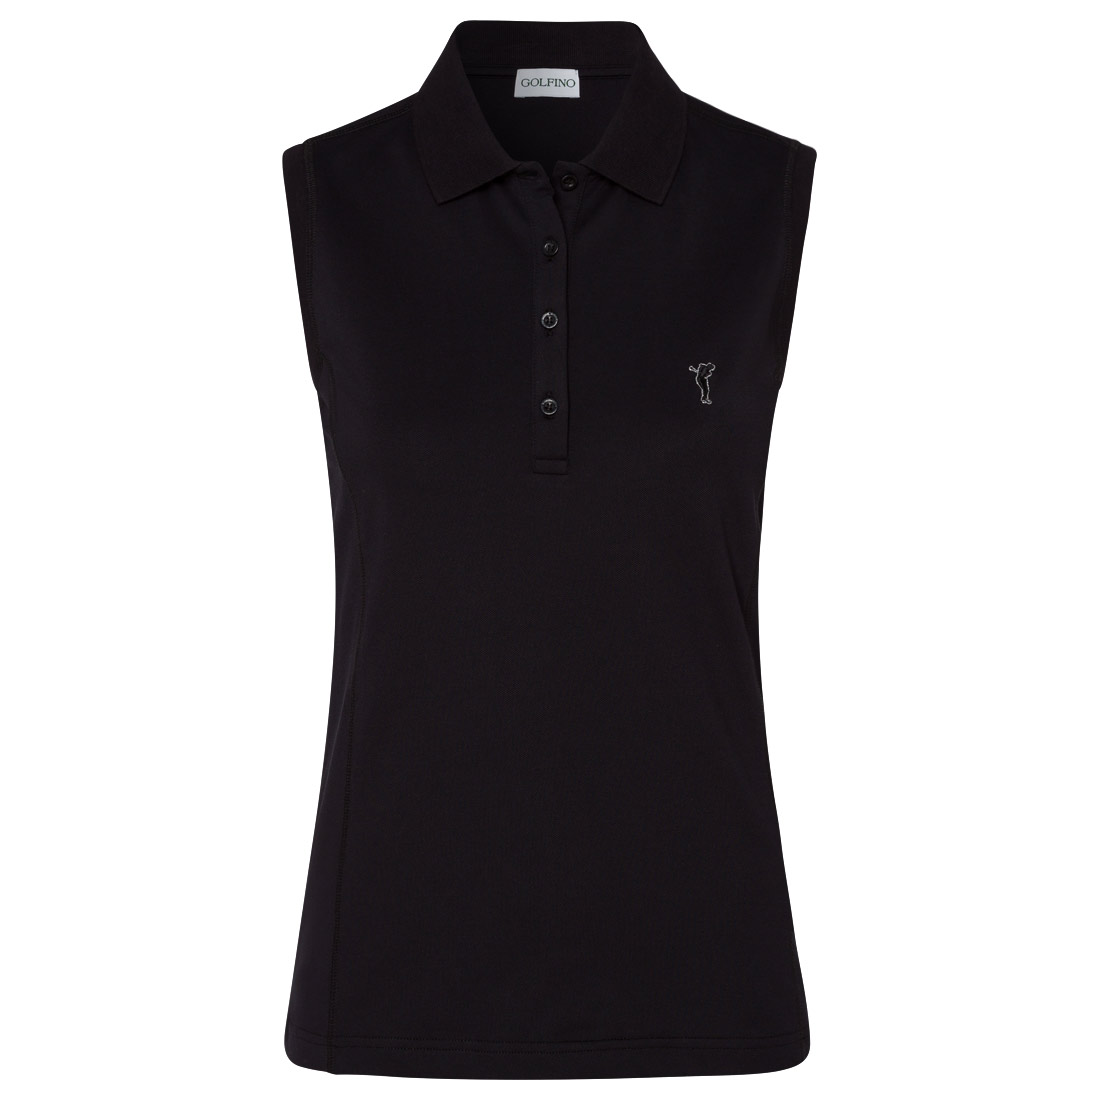 Sleeveless ladies' golf polo shirt with sun protection function